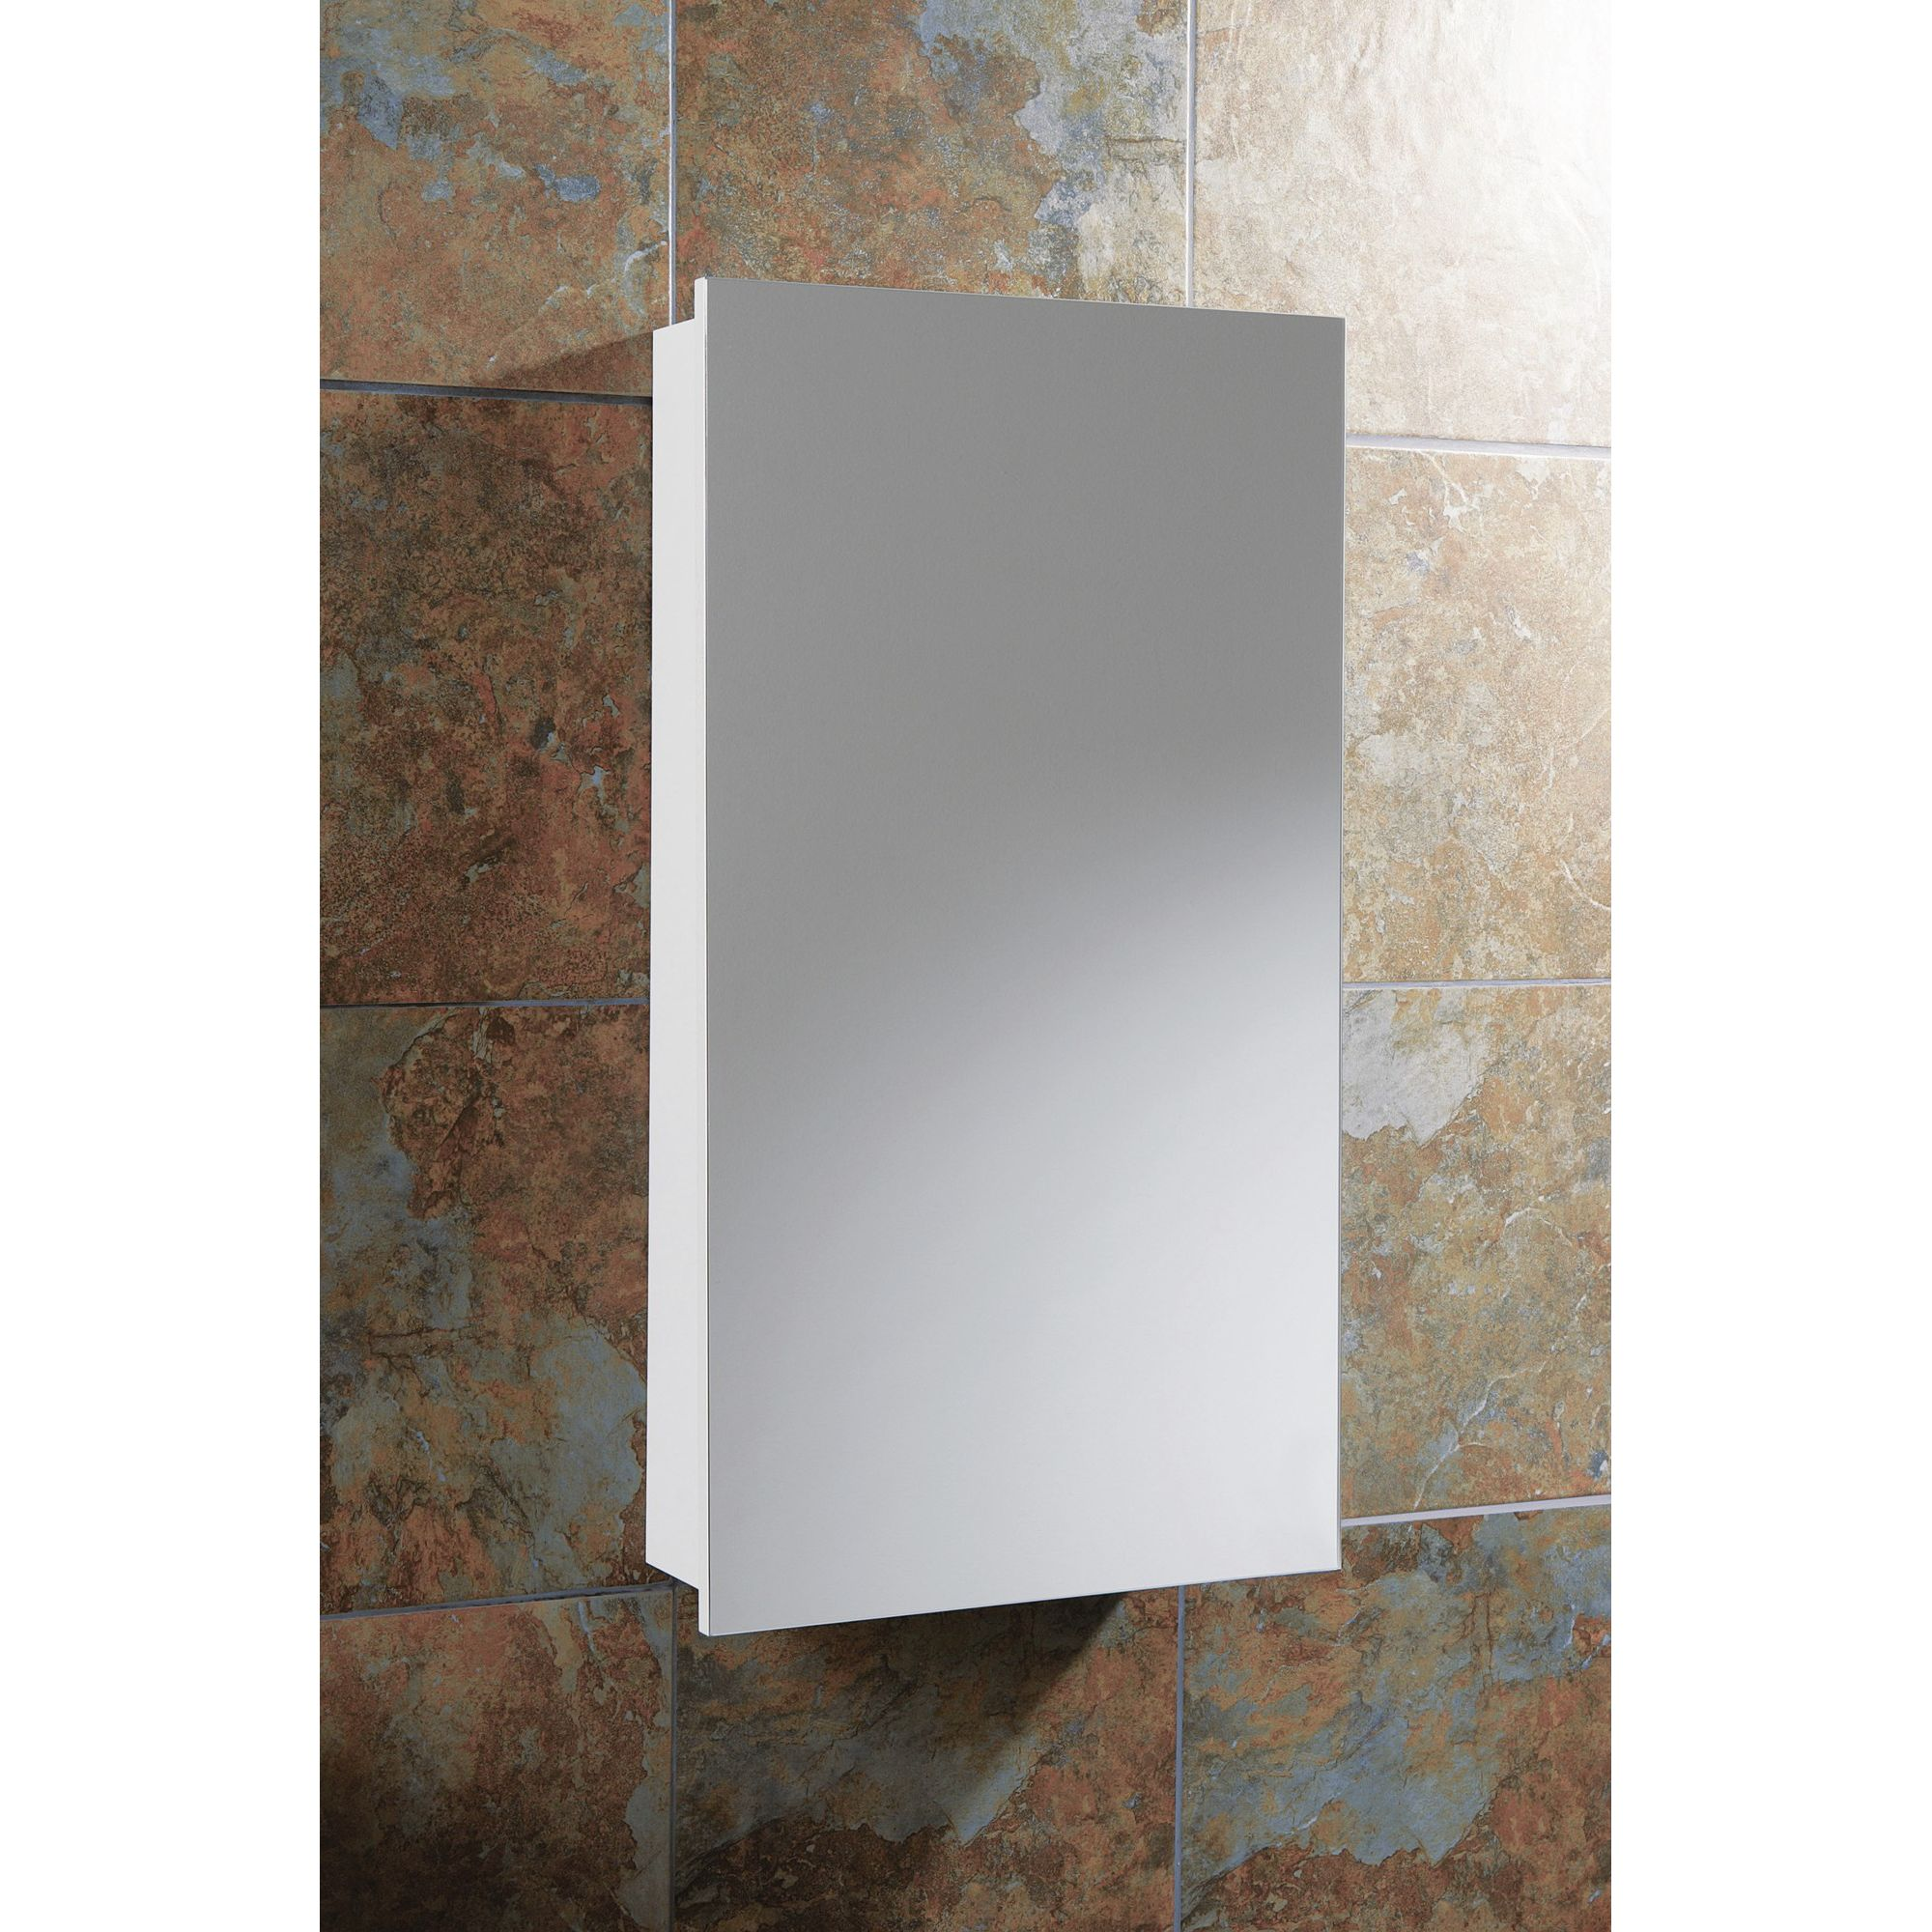 HIB Denia / Sorrento Small Bathroom Mirror Cabinet at Tesco Direct